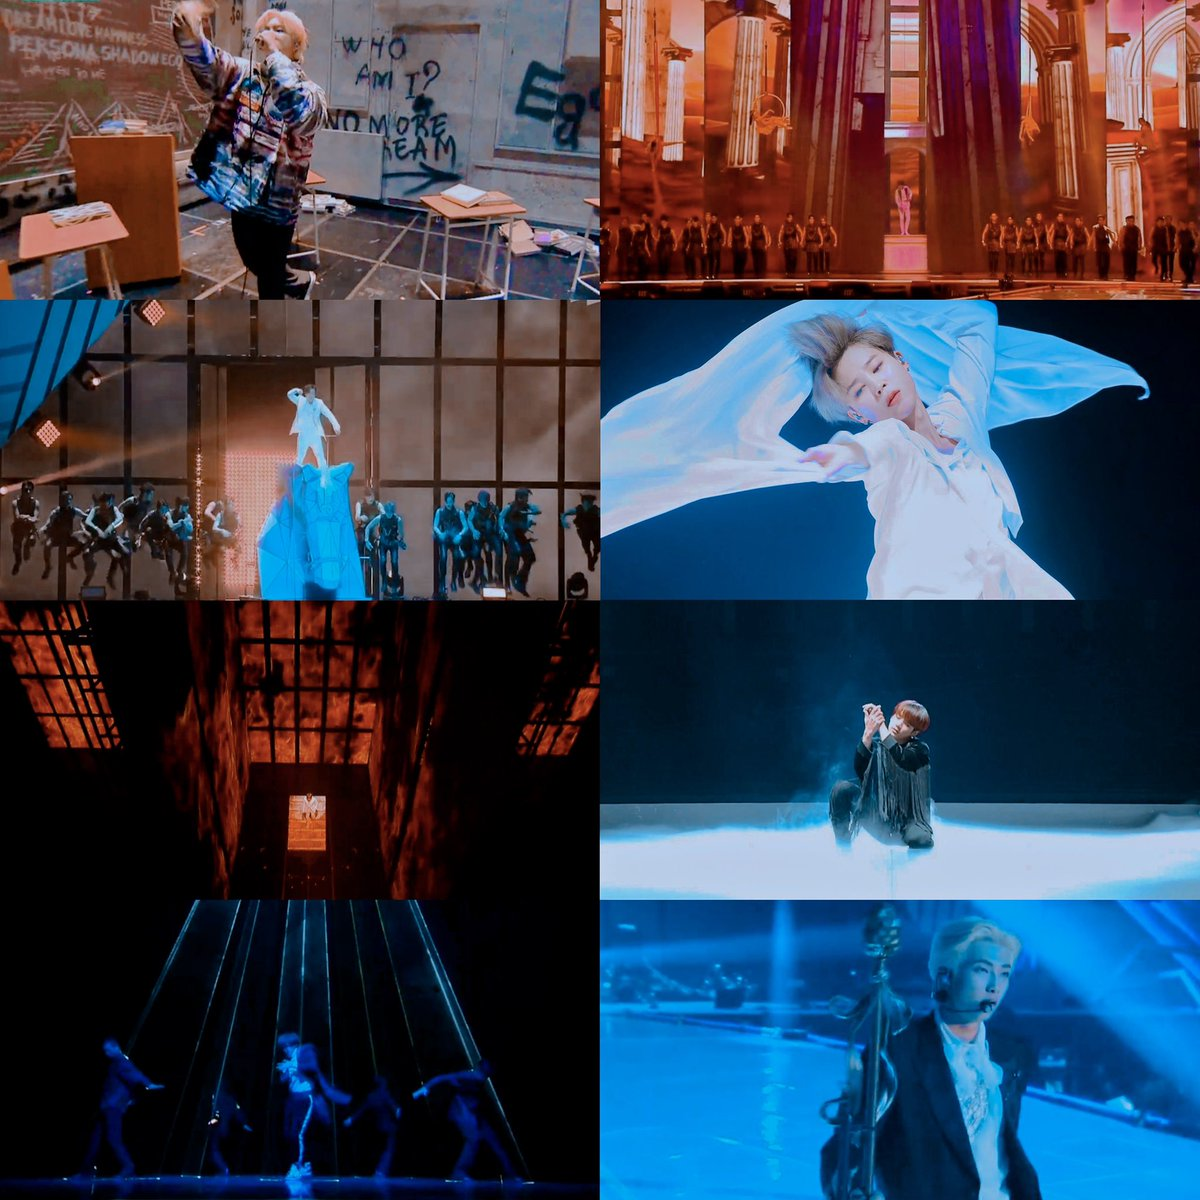 Remember how our lives changed forever after watching these mind blowing performances last year ? #MMA2020